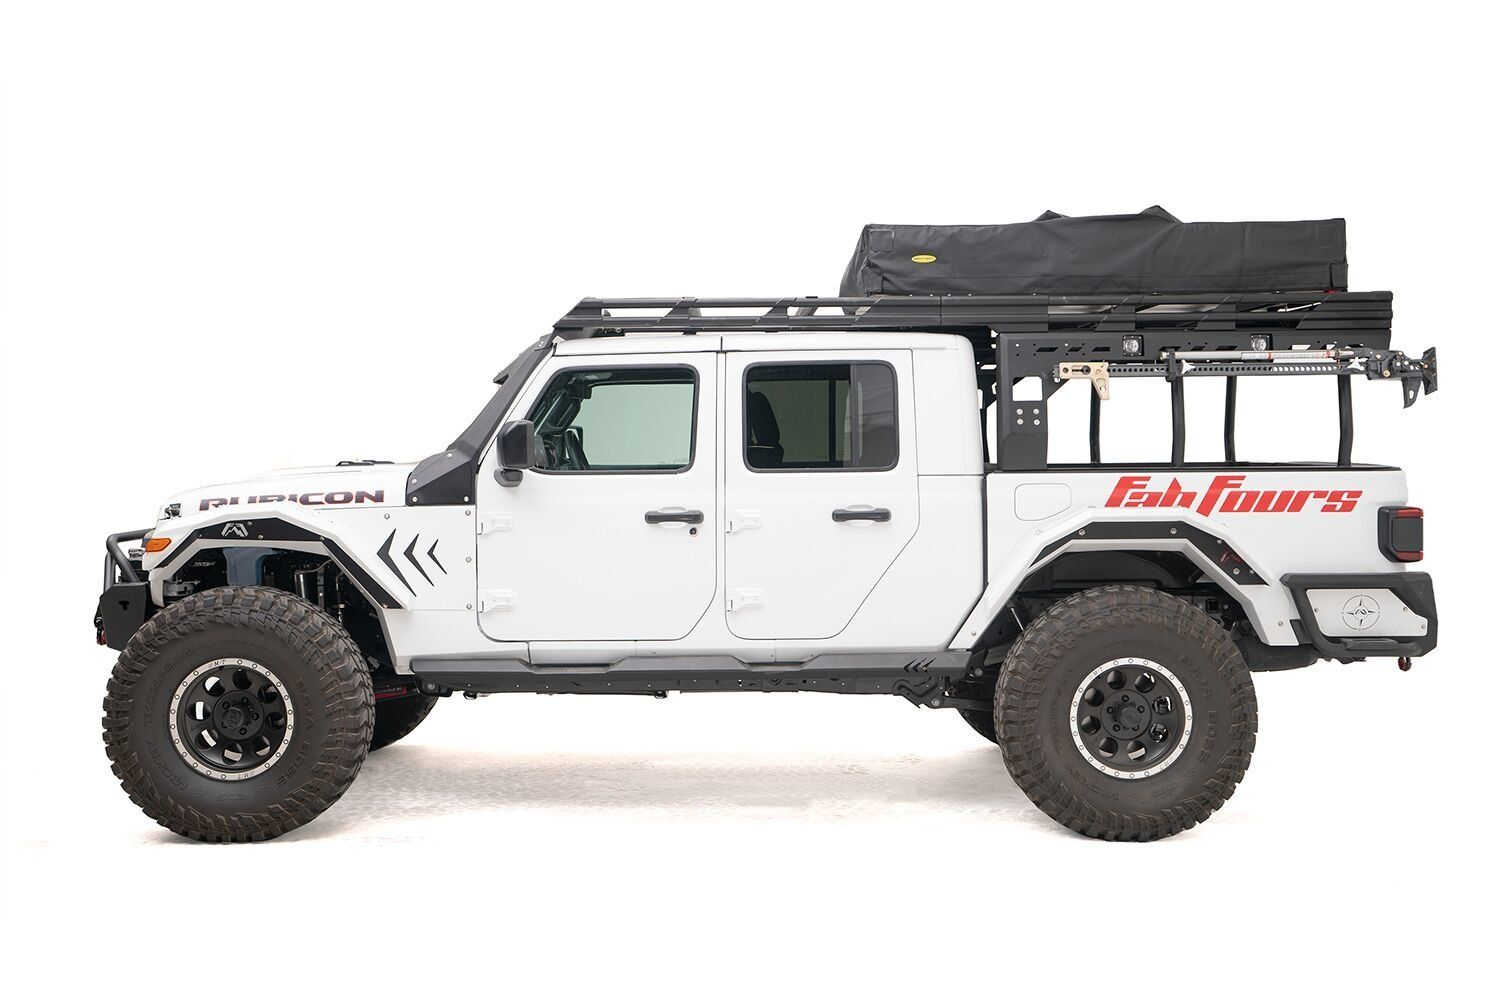 Fab Fours Overland Rack Extension (Requires Overland Rack